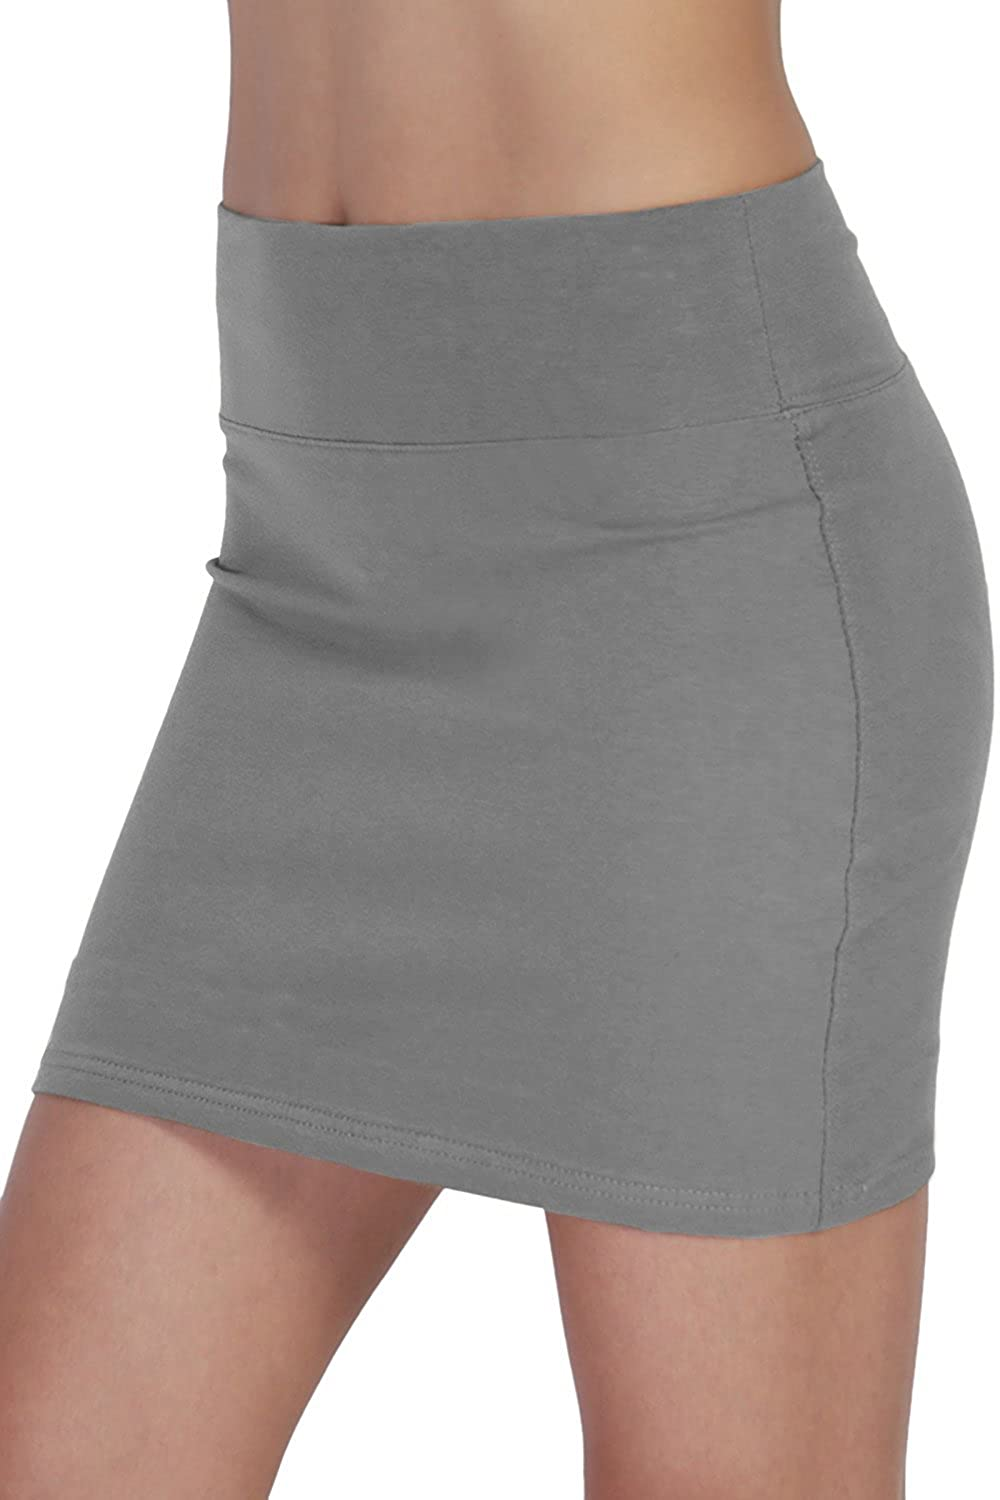 74e9d327c418 Solid Color Trendy Tight Mini Skirt Bodycon Glittery High Waist Skirt with  Shining Sequins Decor Mini Pencil Skirt Occasion:Daily Wear,Party, Club, ...